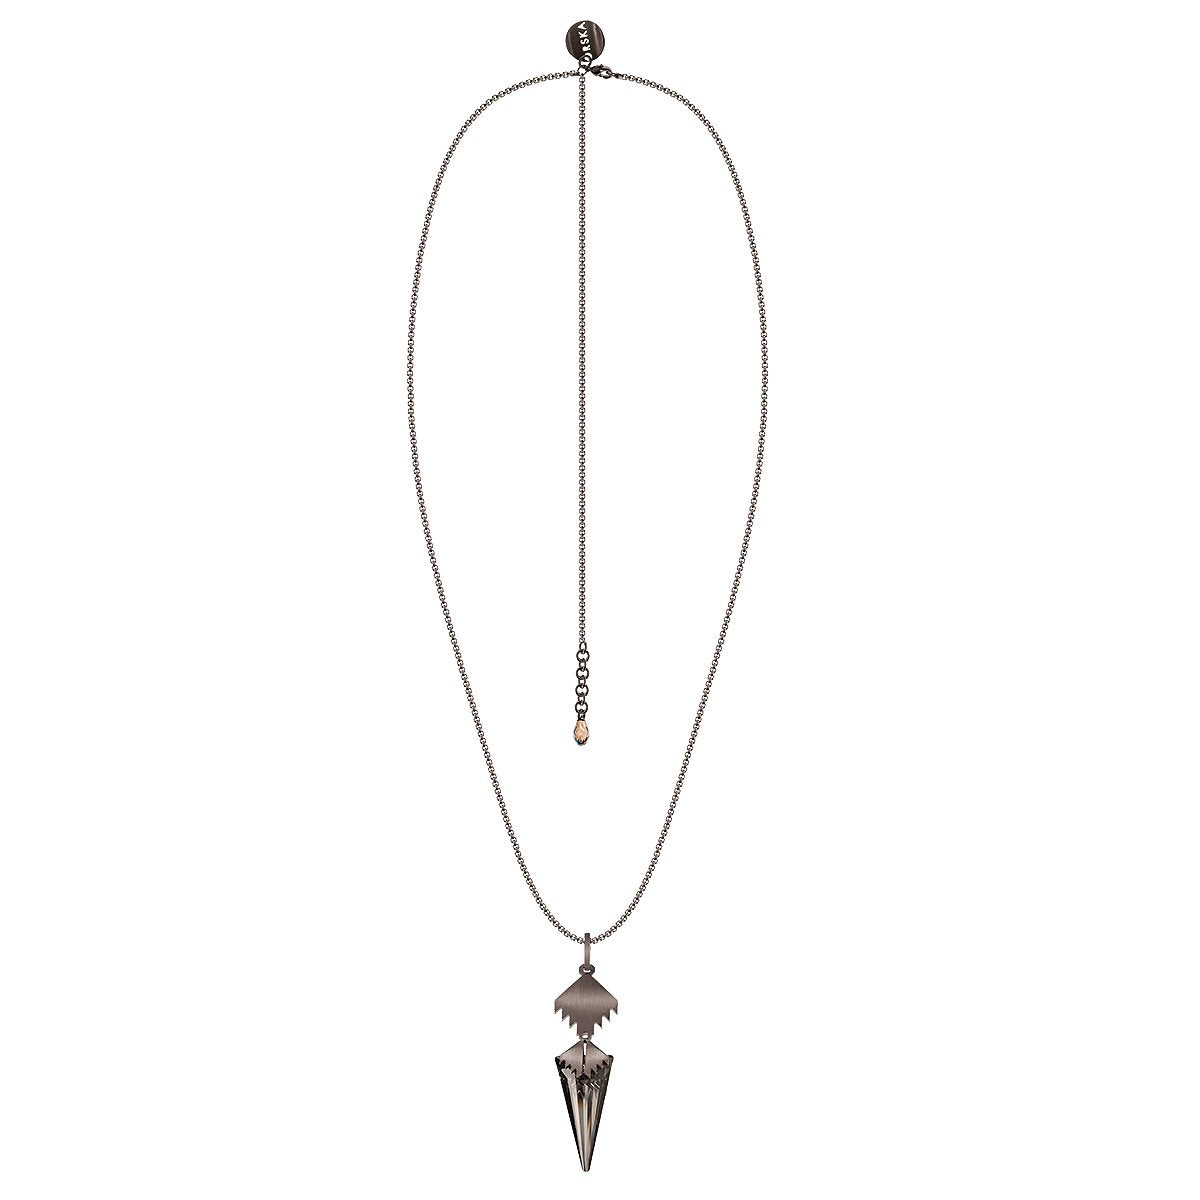 Necklace from Frost collection - FN48-1